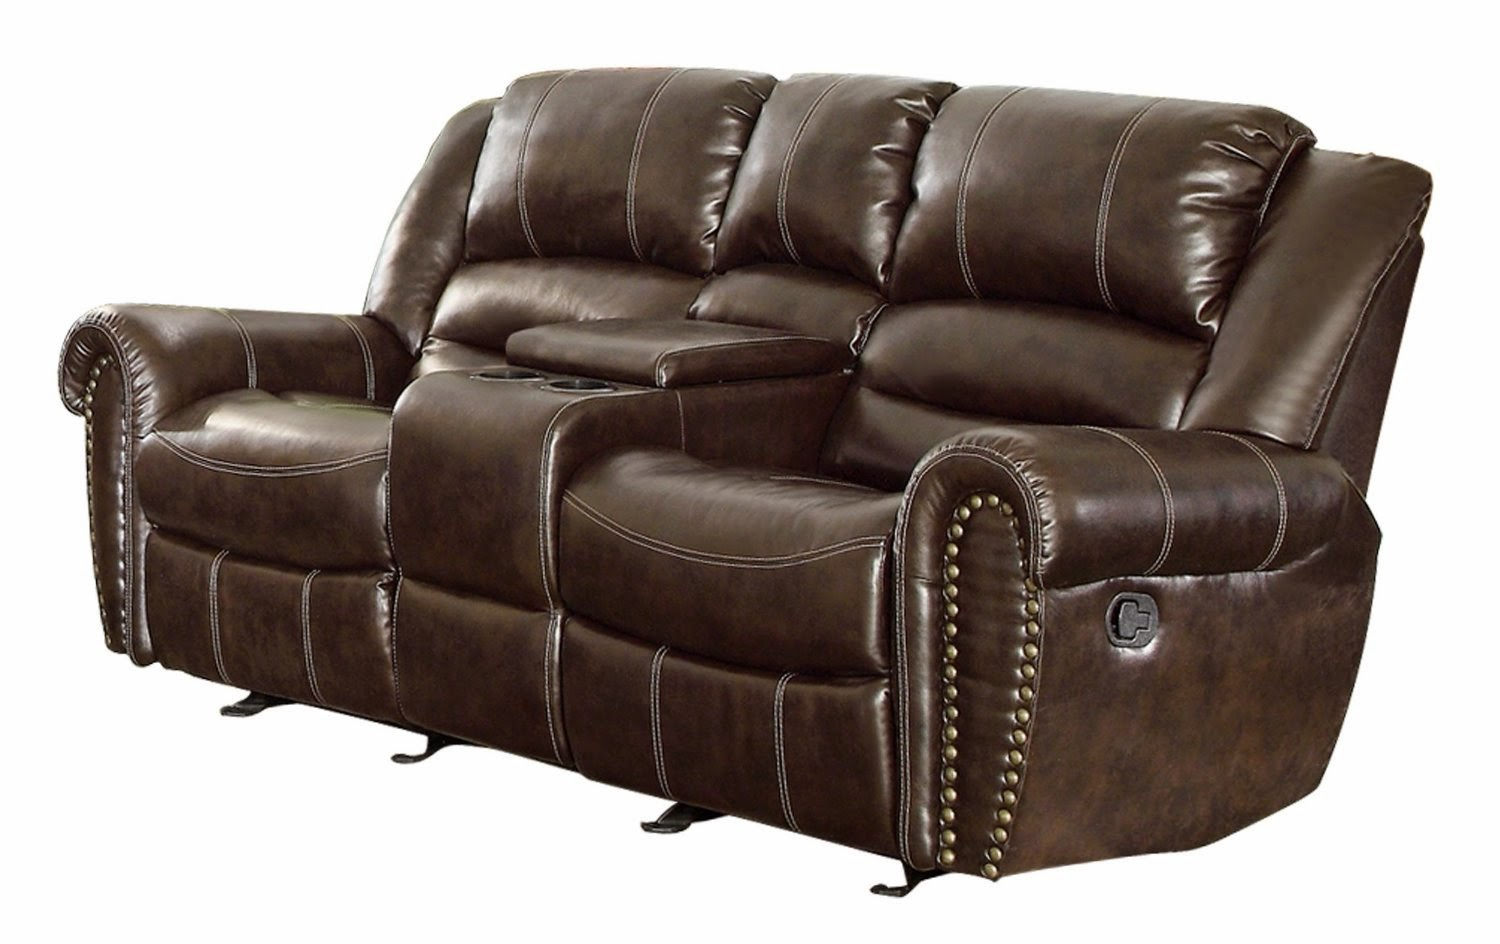 Where Is The Best Place To Buy Recliner Sofa 2 Seater Brown Leather Recliner Sofa: loveseats with console